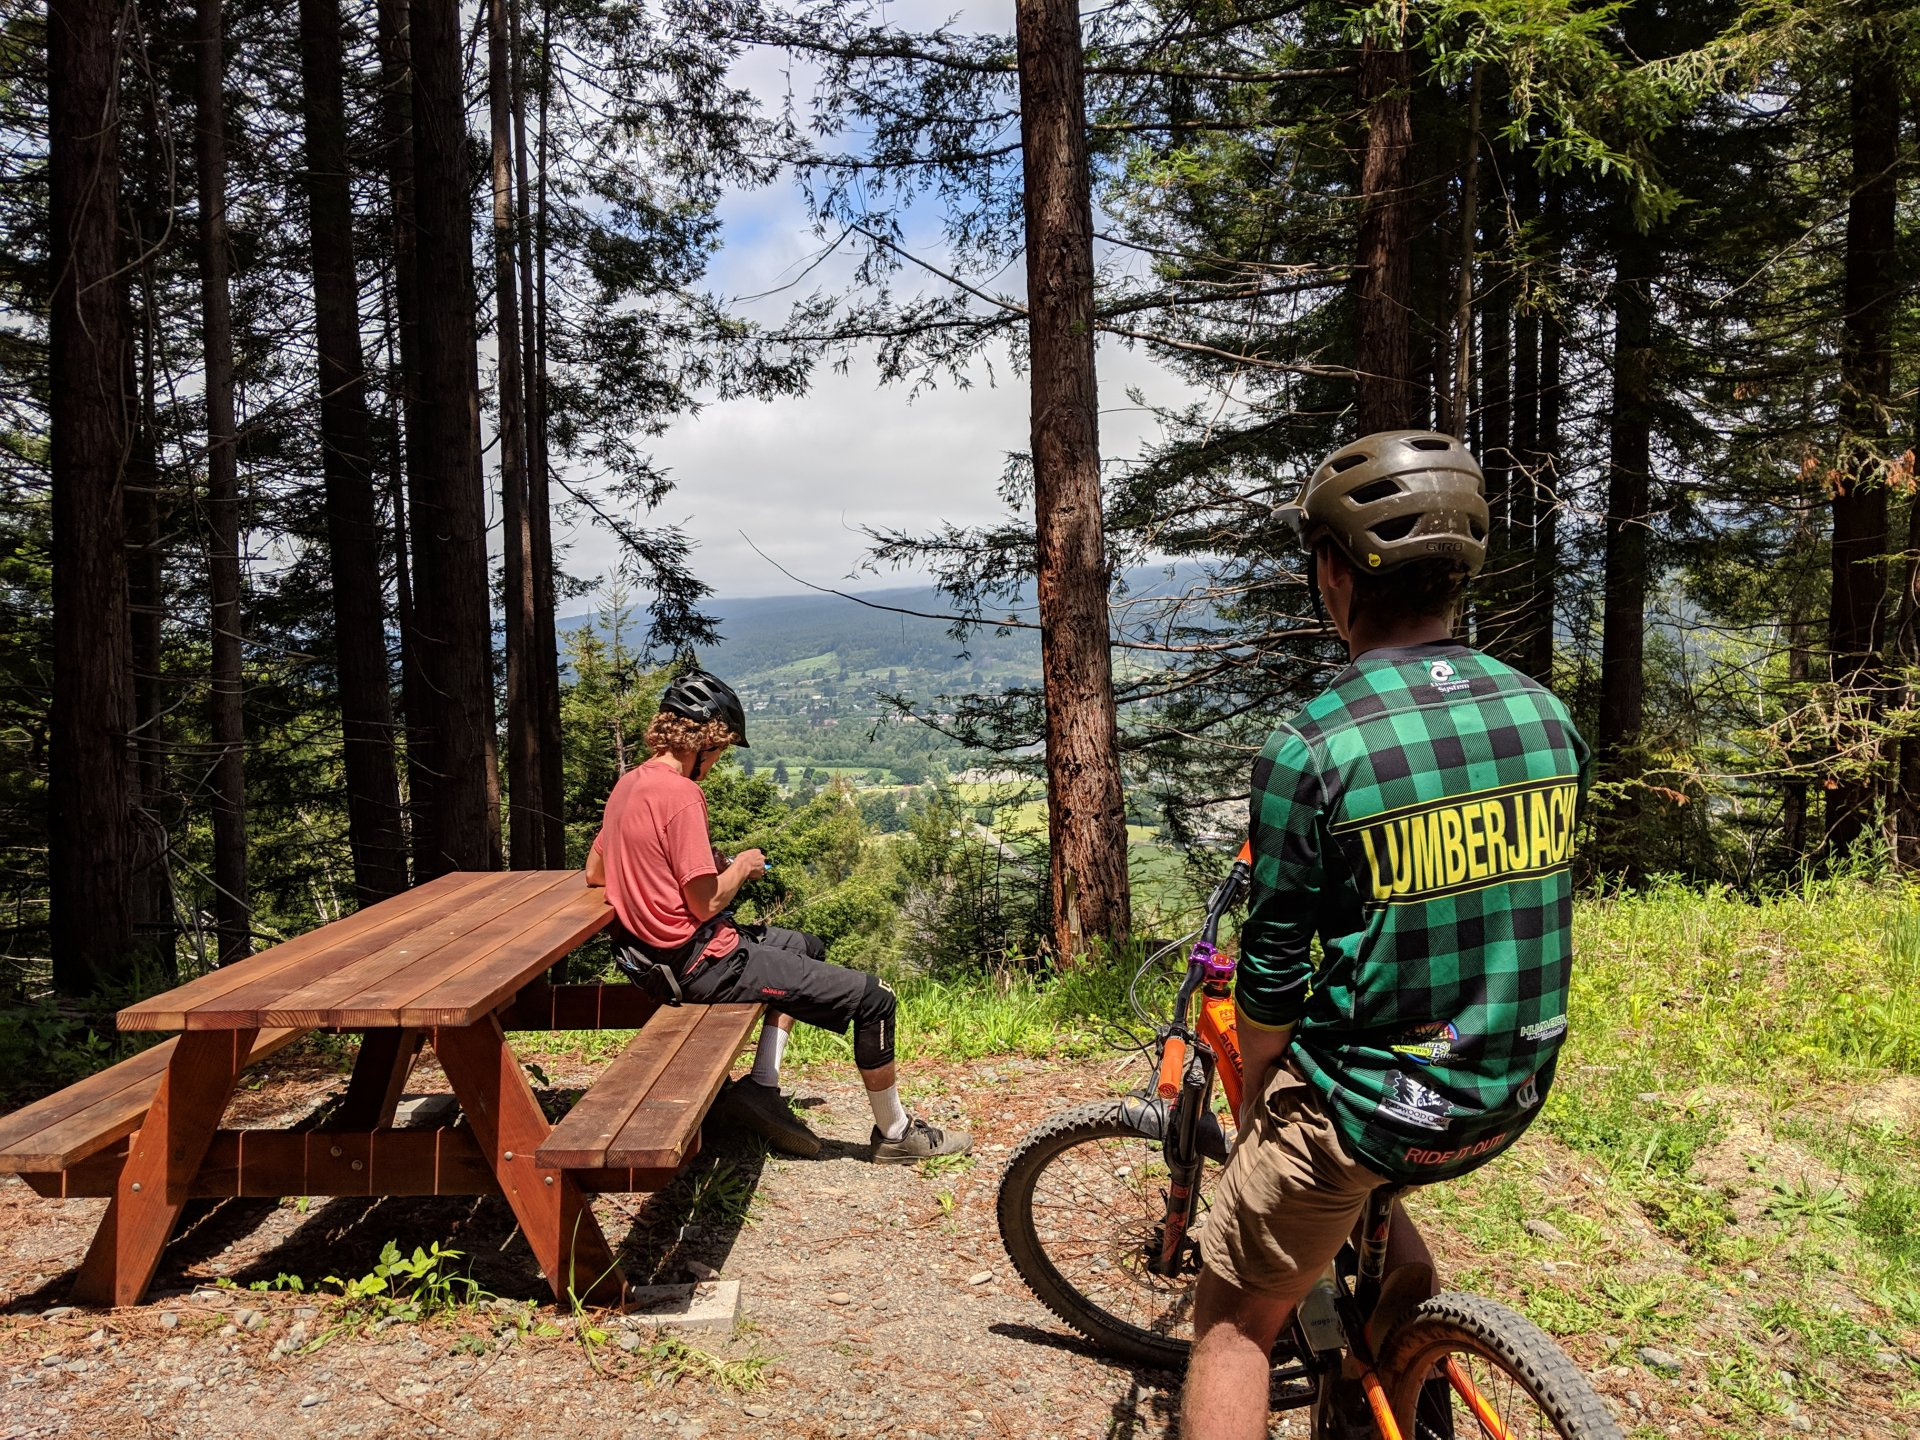 HSU students Michael Uppenkamp and Matt Wolder celebrate bike month 2019 with an outing to the Blue Lake trail network. | File photo by Jett Williams